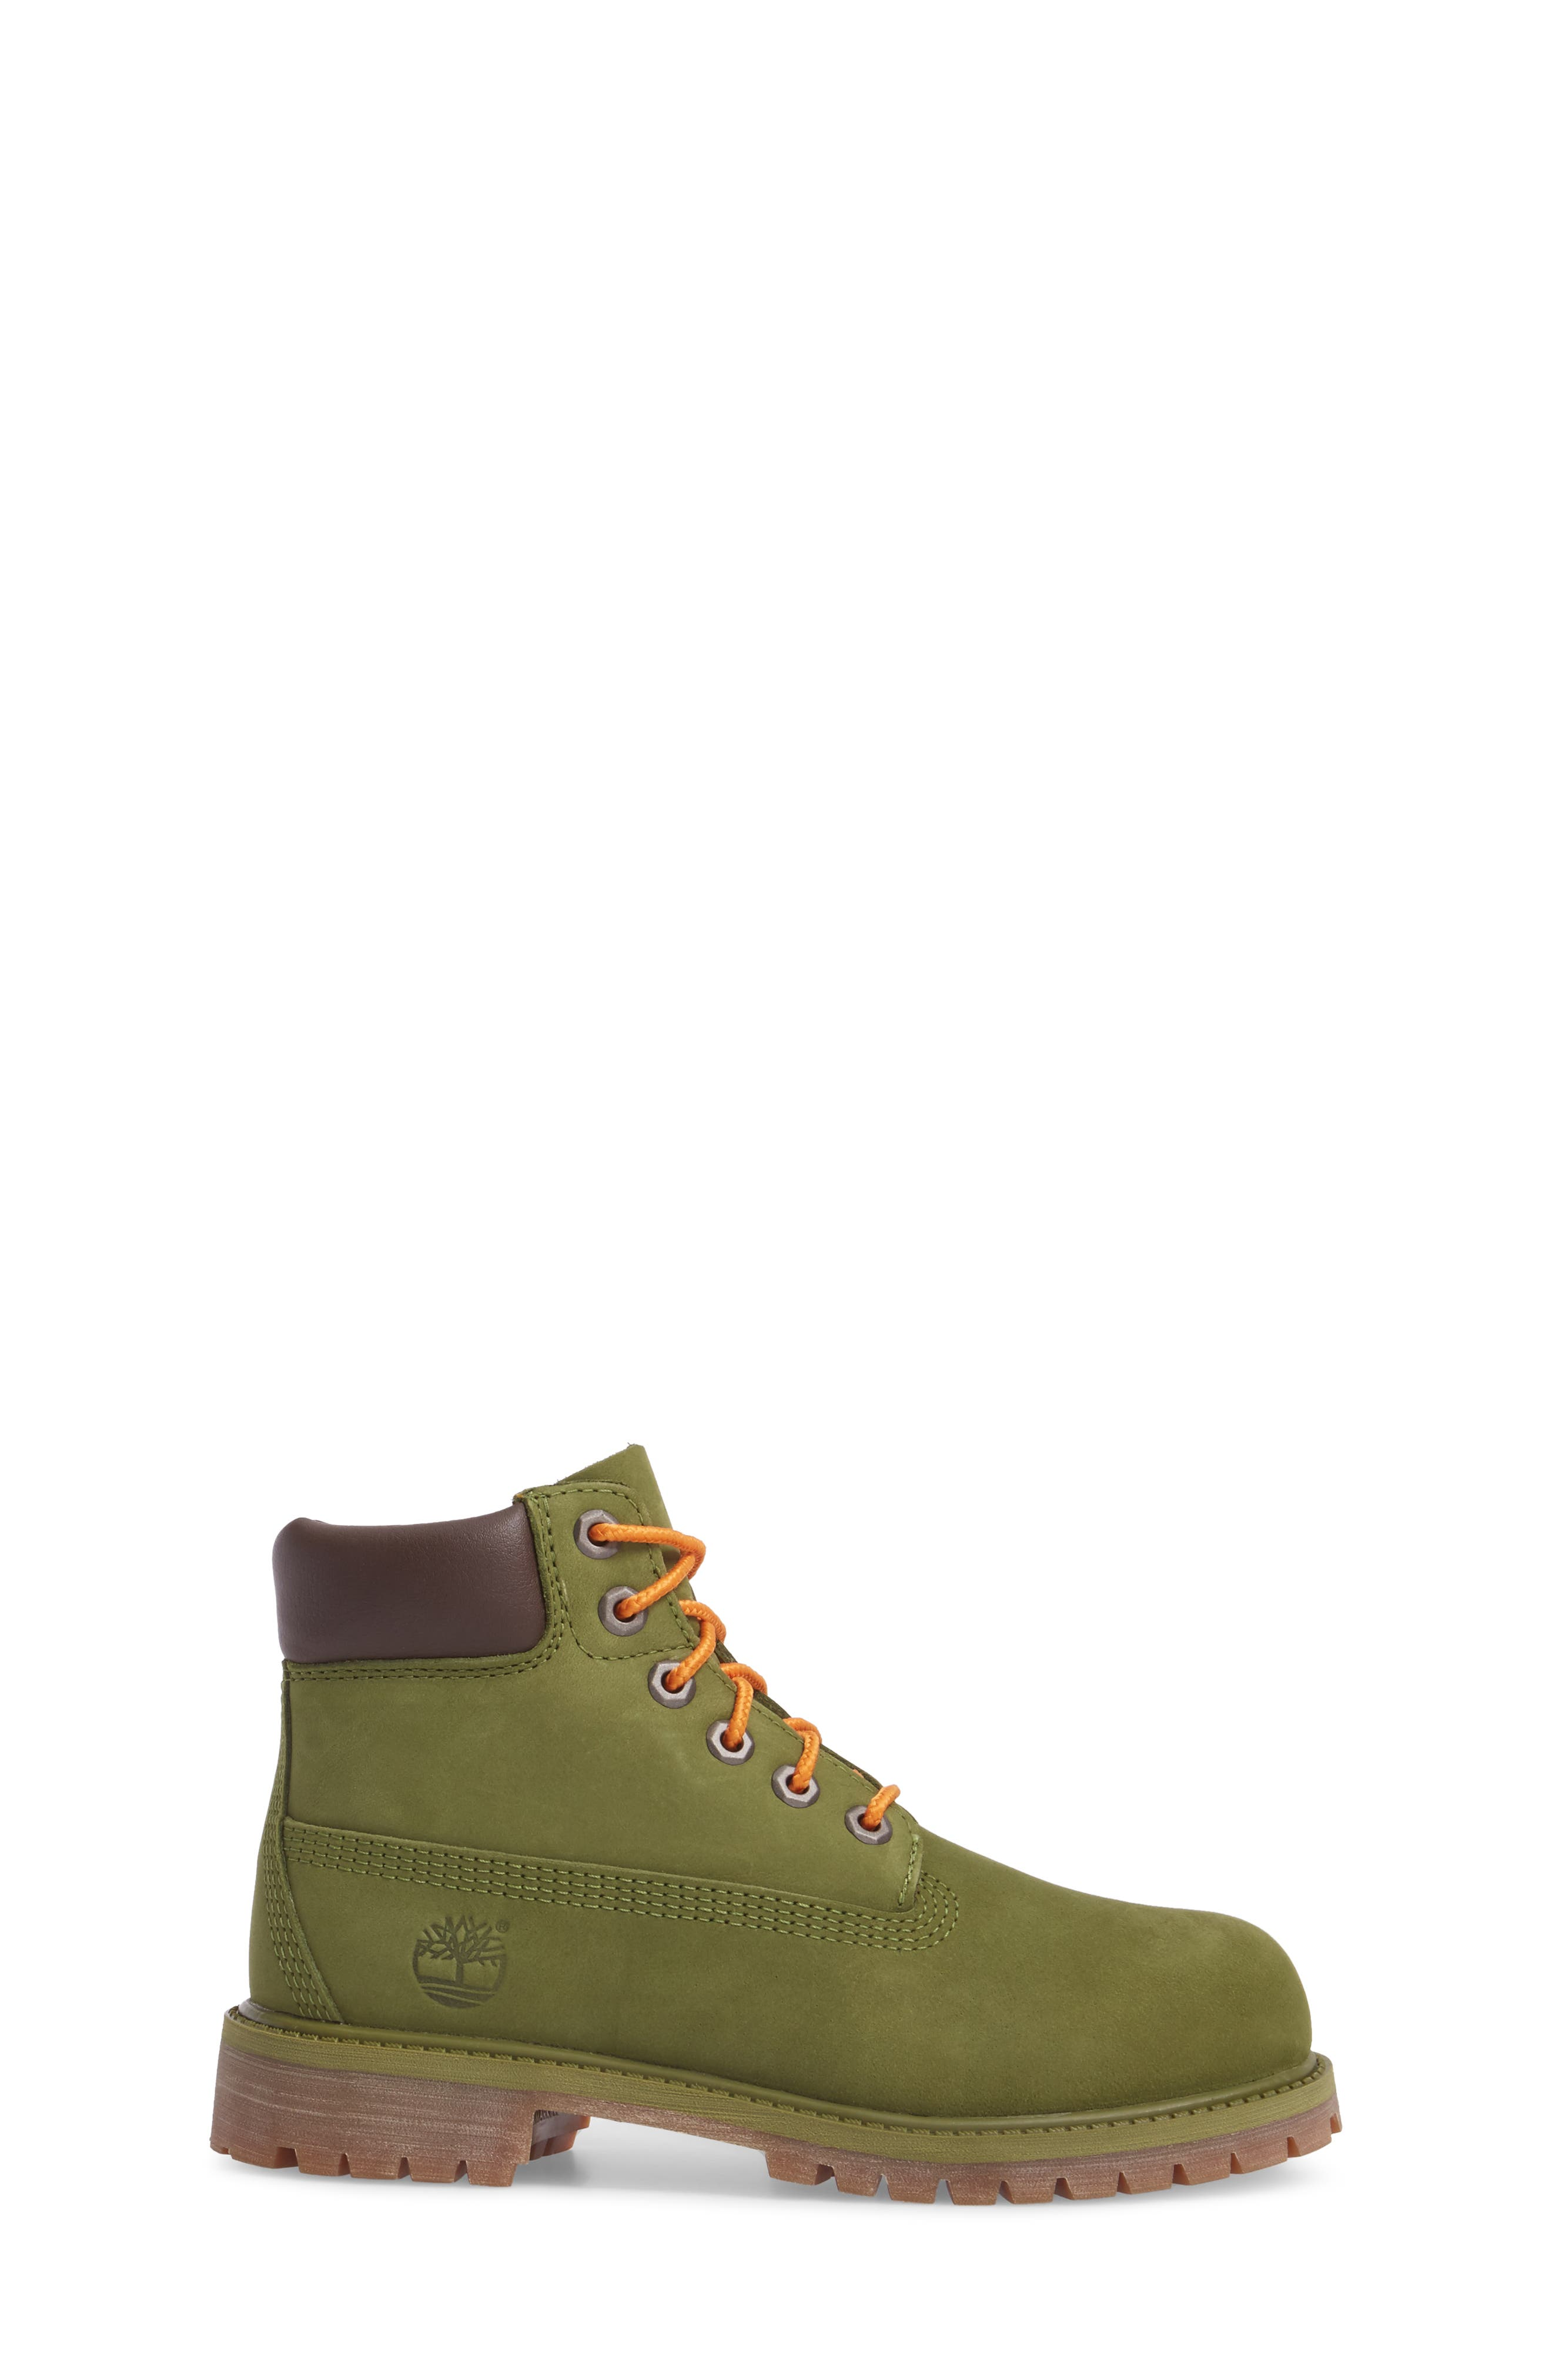 Alternate Image 3  - Timberland 6-Inch Premium Waterproof Boot (Walker, Toddler, Little Kid & Big Kid)